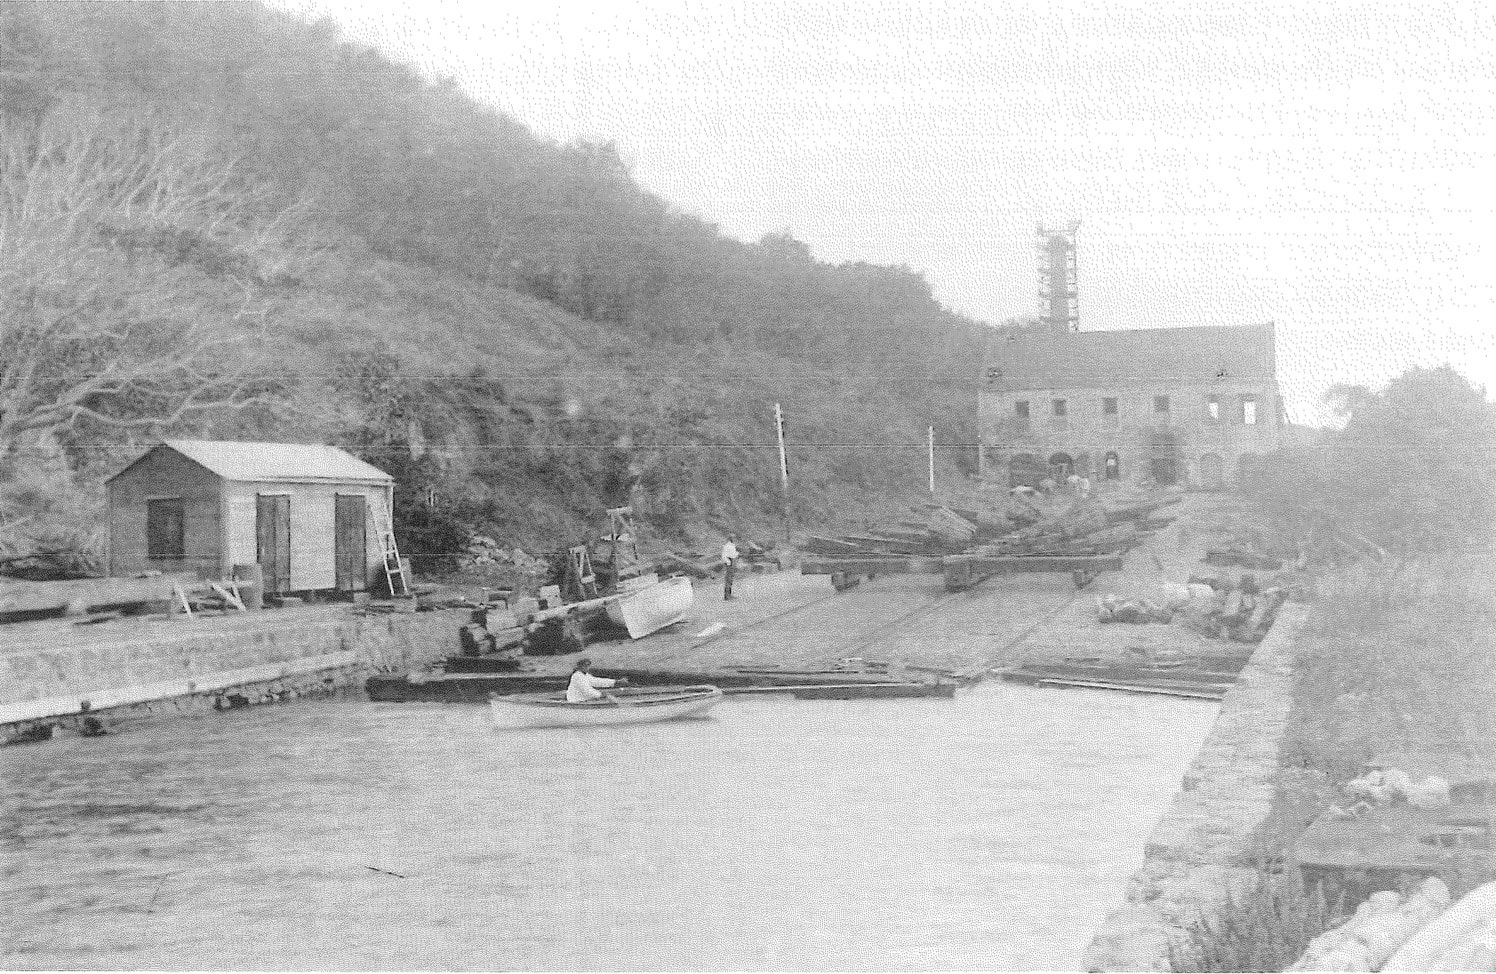 Photographer captured early image of Creque Marine Railway on Hassel Island.